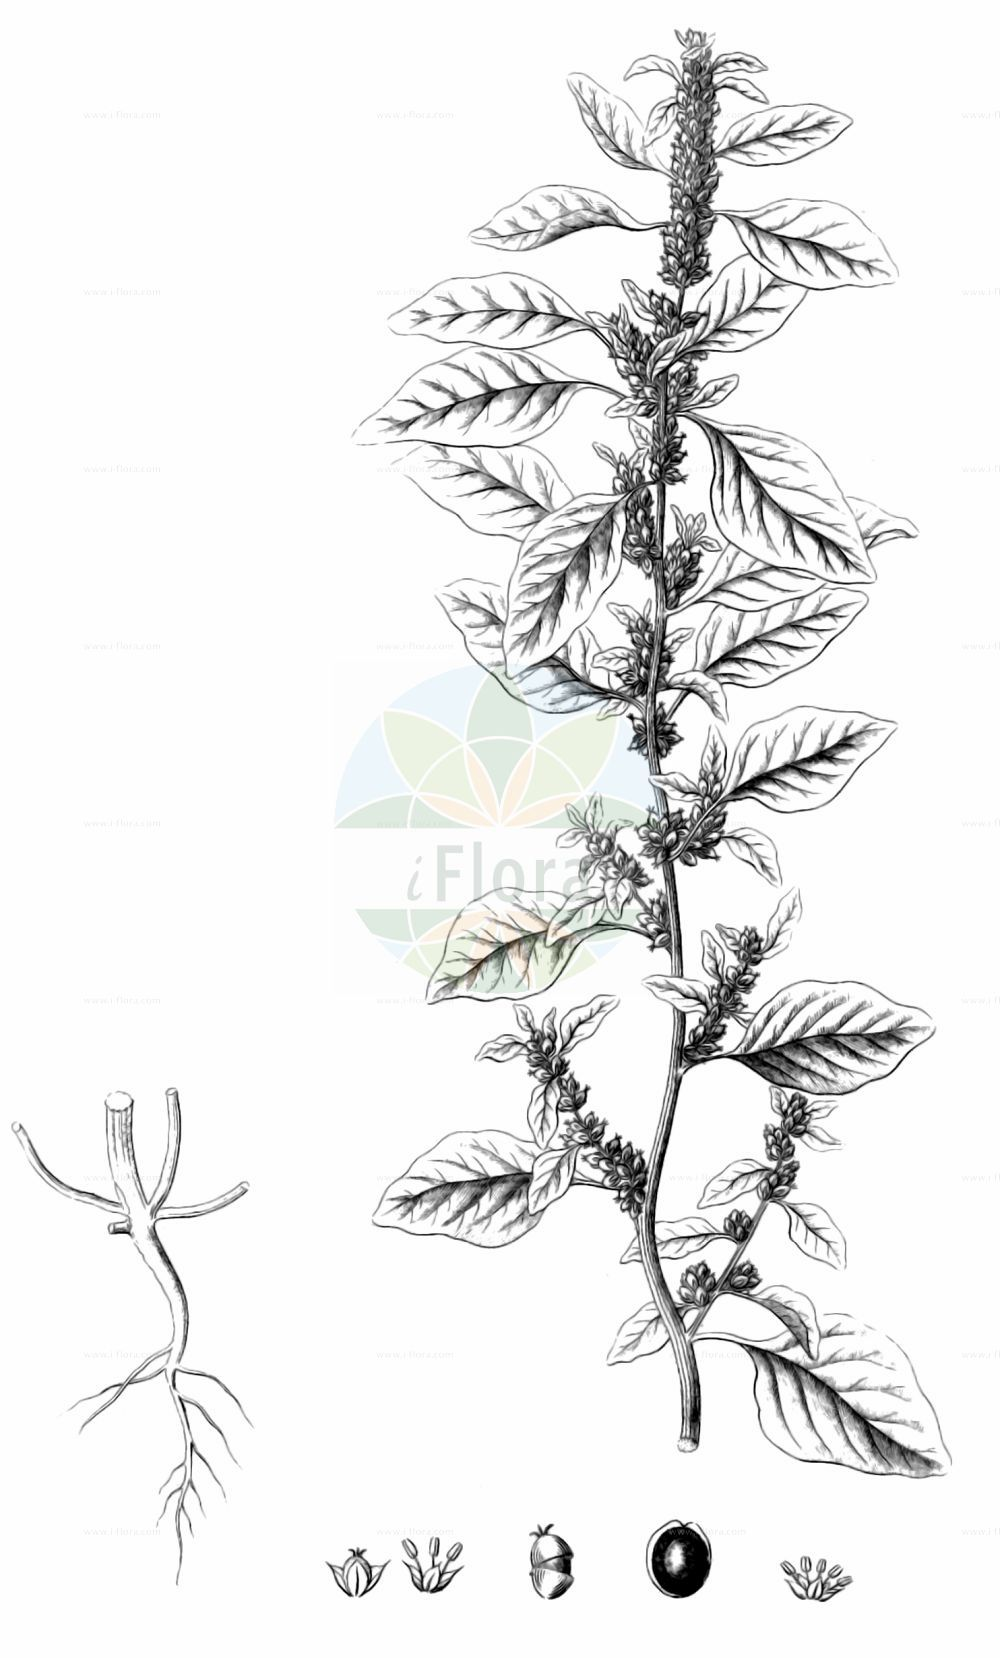 Historische Abbildung von Amaranthus graecizans (Griechischer Fuchsschwanz - Short-tepalled Pigweed). Das Bild zeigt Blatt, Bluete, Frucht und Same. ---- Historical Drawing of Amaranthus graecizans (Griechischer Fuchsschwanz - Short-tepalled Pigweed).The image is showing leaf, flower, fruit and seed.(Amaranthus graecizans,Griechischer Fuchsschwanz,Short-tepalled Pigweed,Amaranthus angustifolius,Amaranthus graecizans,Galliaria graecizans,Glomeraria graecizans,Griechischer Fuchsschwanz,Short-tepalled Pigweed,Mat Amaranth,Tumbleweed,Mediterranean Amaranth,Tumbling Pigweed,White Pigweed,Amaranthus,Fuchsschwanz,Pigweed,Amaranthaceae,Fuchsschwanzgewaechse,Pigweed family,Blatt,Bluete,Frucht,Same,leaf,flower,fruit,seed,Reichenbach (1823-1832))